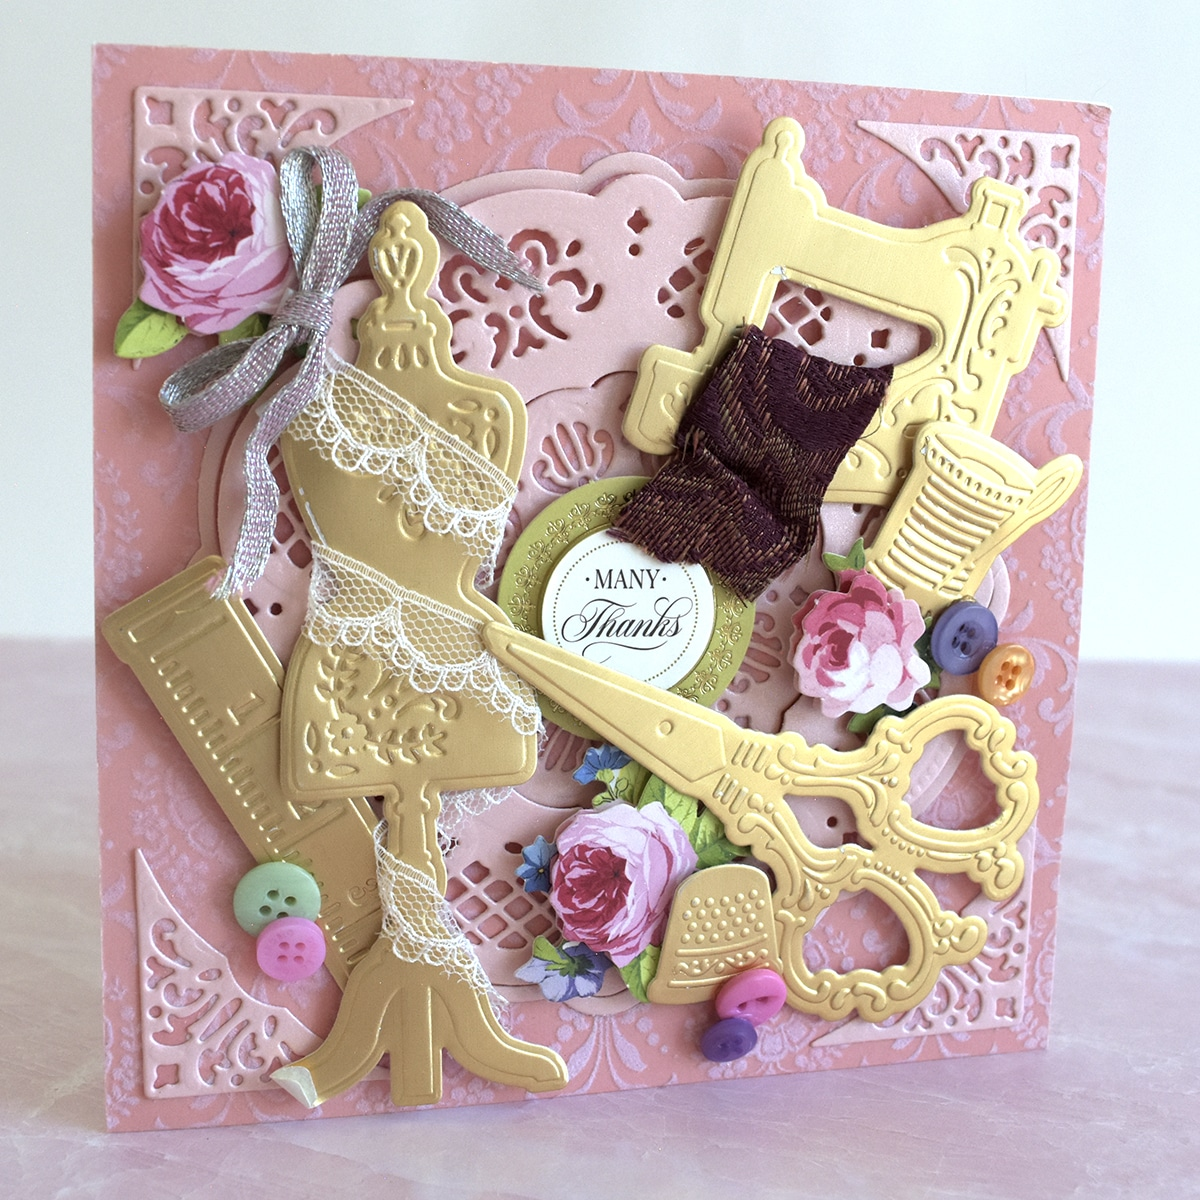 Anna Griffin Fan Mail Friday textured sewing card from Sharon de Vries.